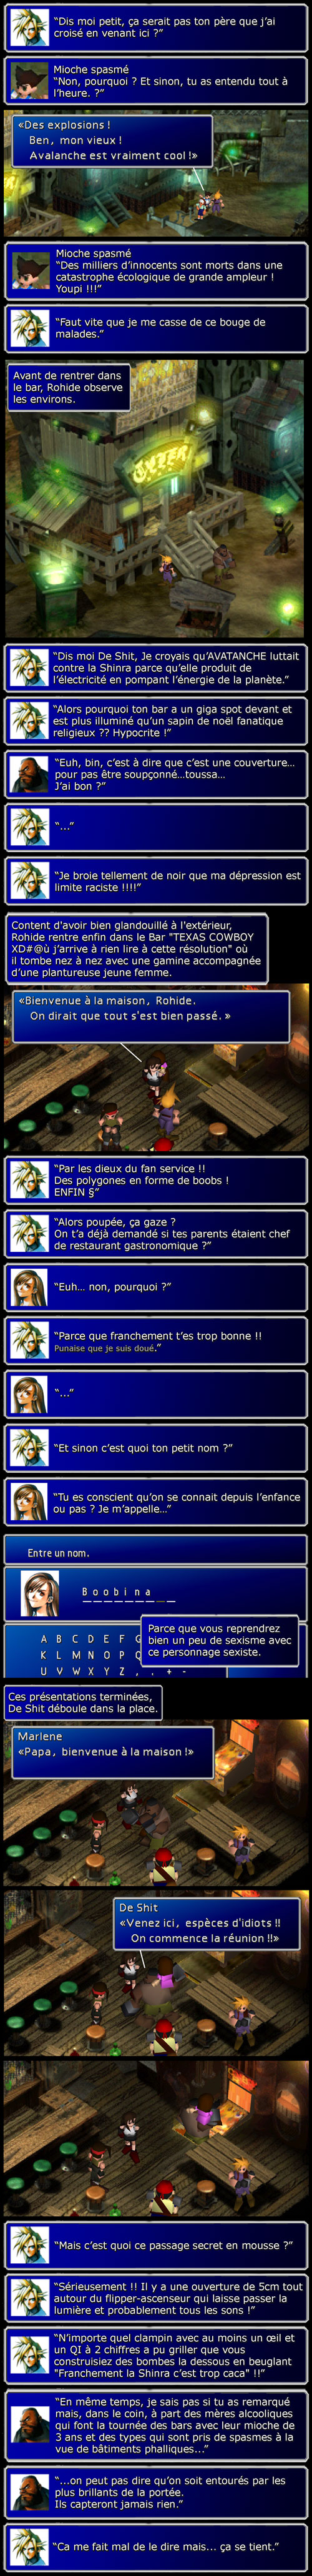 Final fantasy 7 : L'hypocrisie d'Avalanche et le passage secret le moins secret du monde